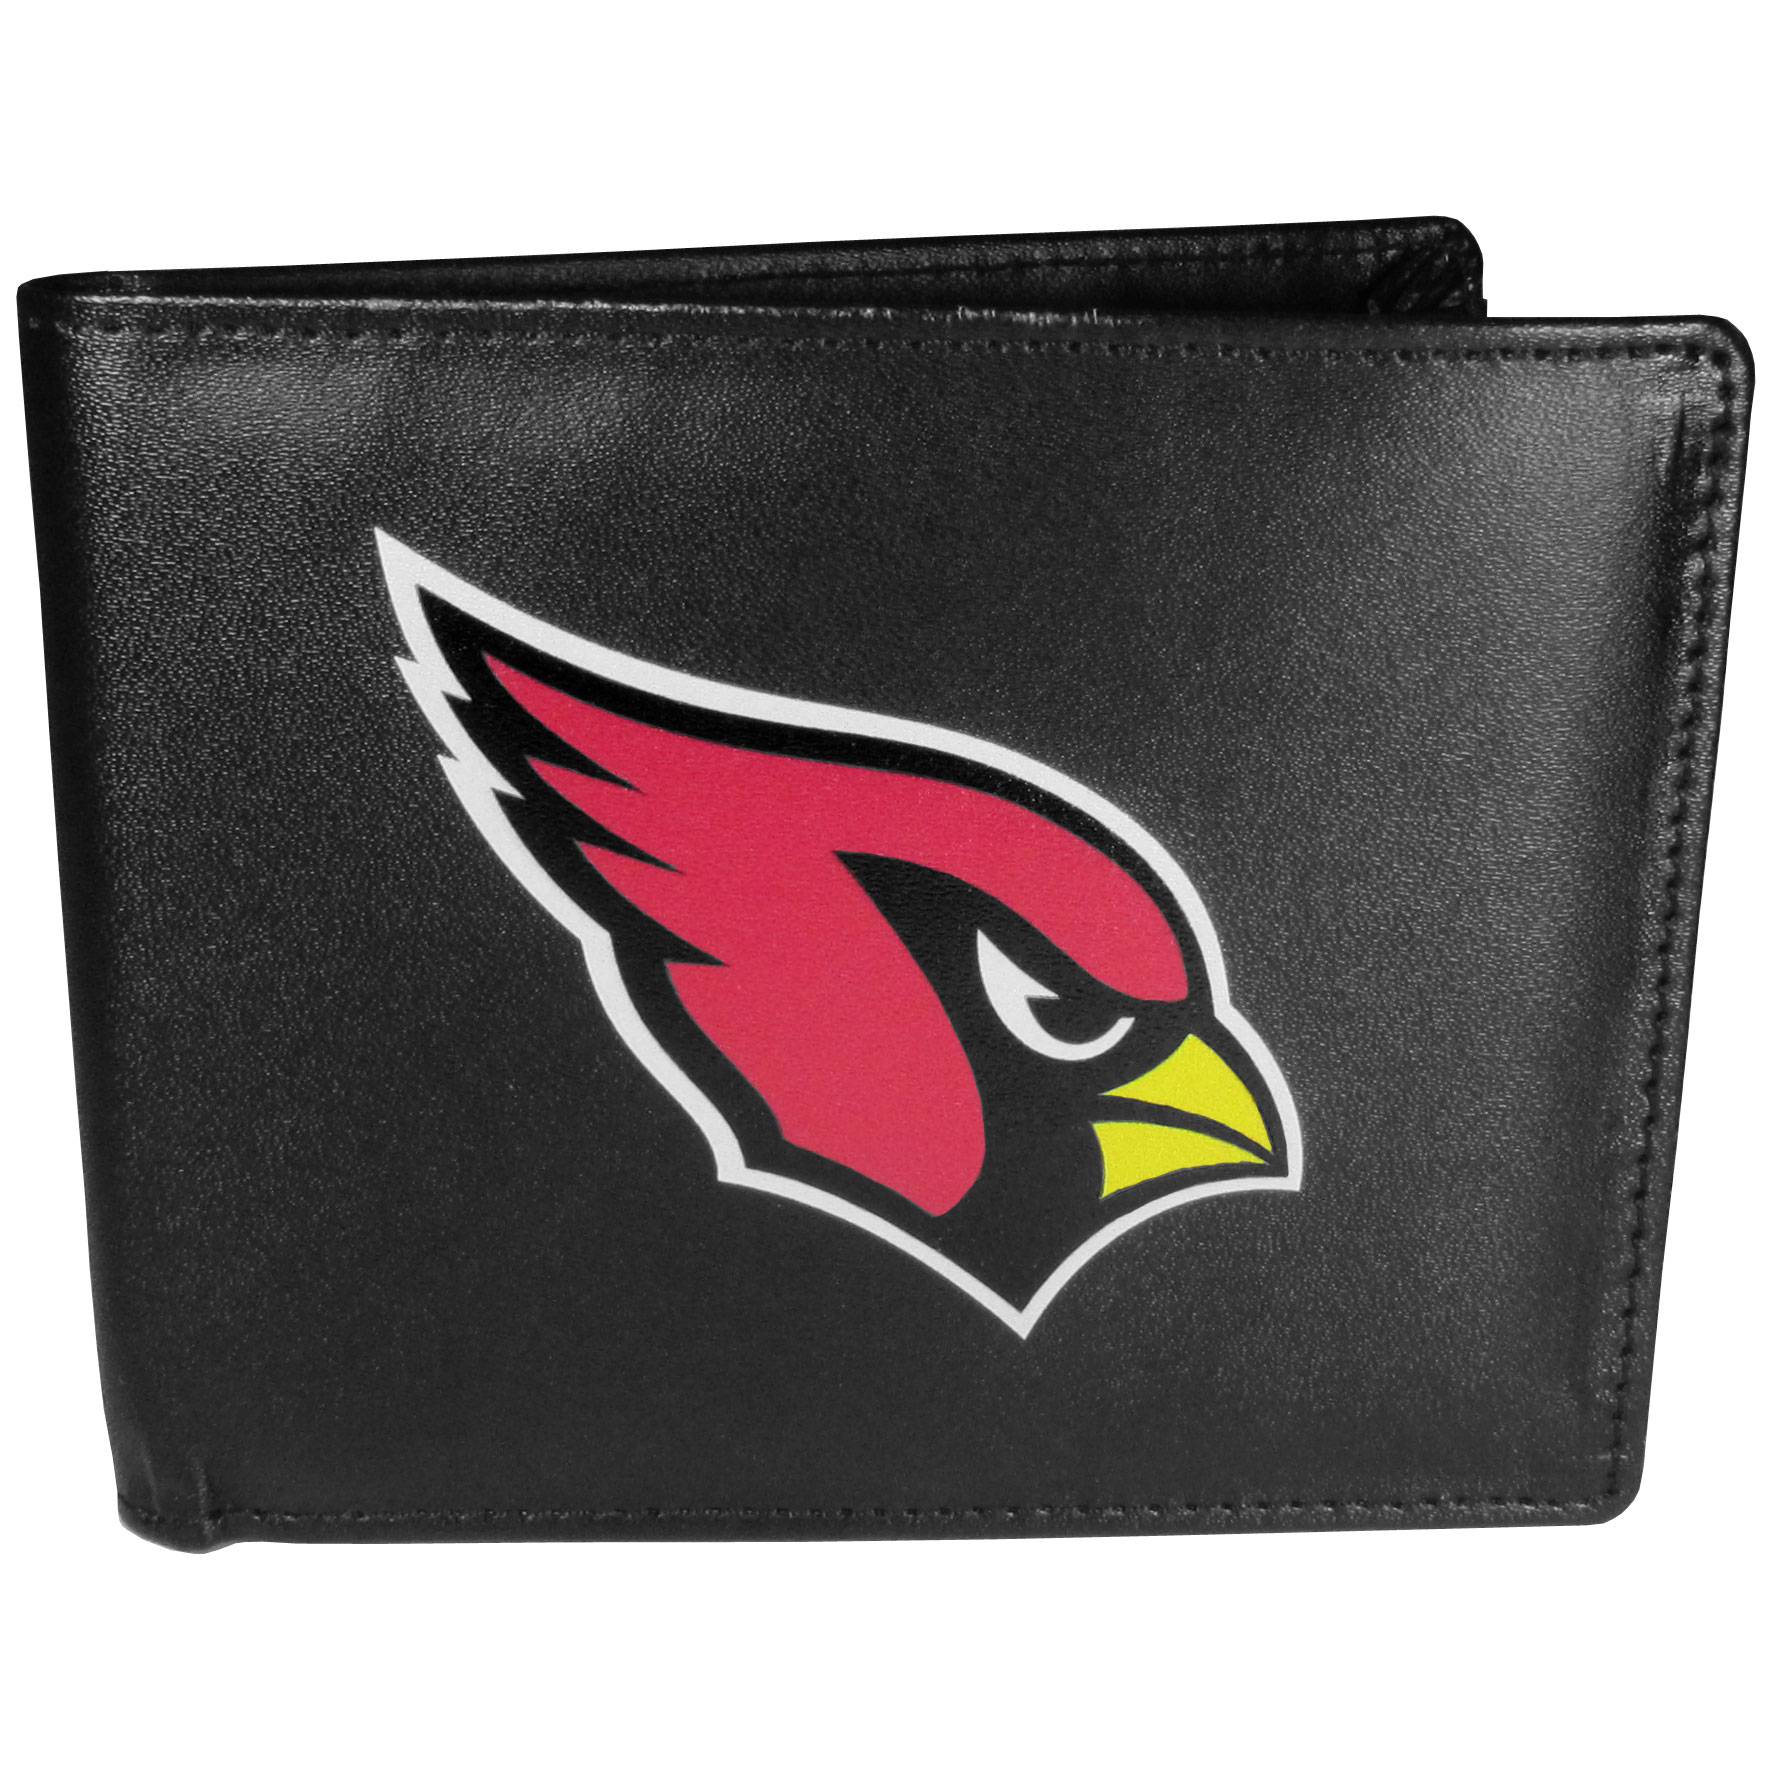 Arizona Cardinals Leather Bi-fold Wallet, Large Logo - Our classic fine leather bi-fold wallet is meticulously crafted with genuine leather that will age beautifully so you will have a quality wallet for years to come. The wallet opens to a large, billfold pocket and numerous credit card slots and has a convenient windowed ID slot. The front of the wallet features an extra large Arizona Cardinals printed logo.